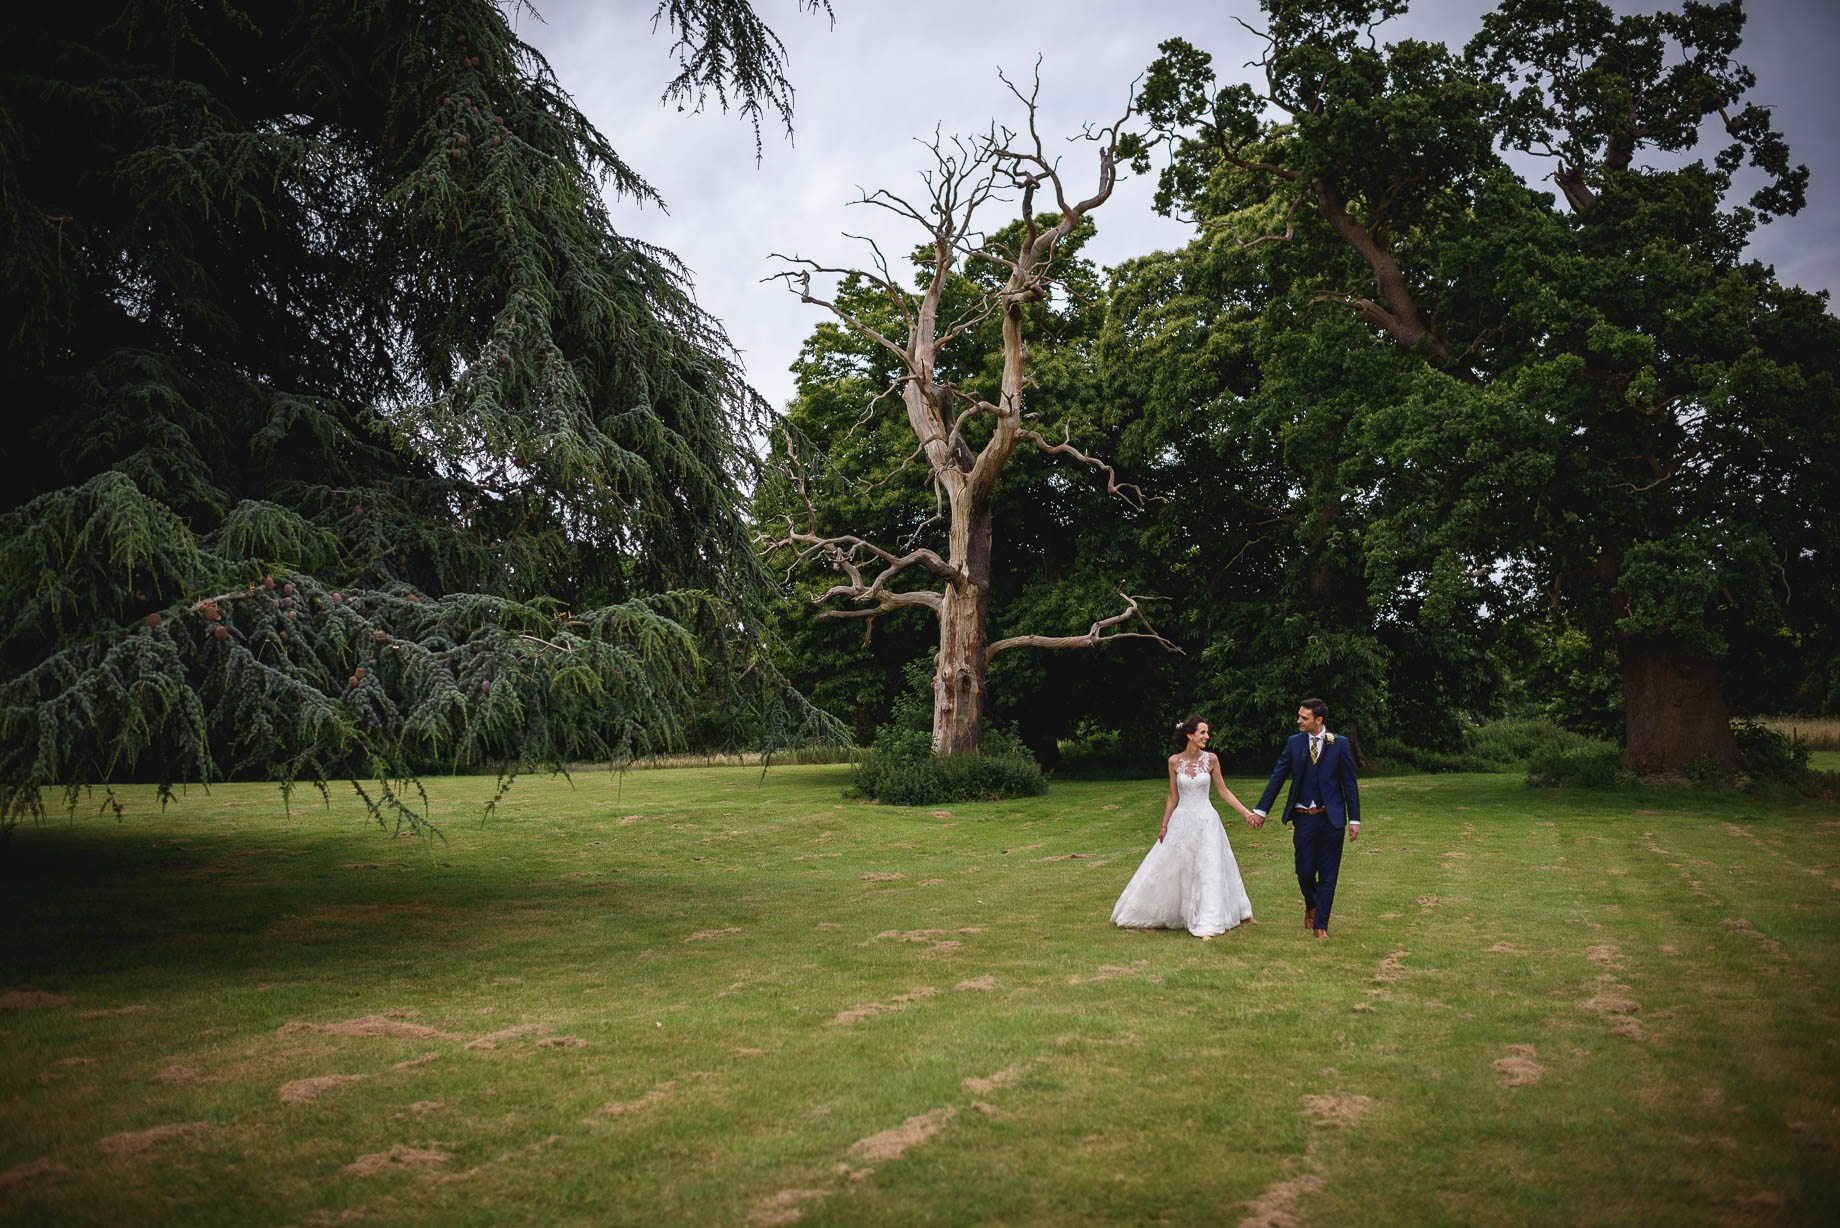 Hertfordshire wedding photography - Sarah and Stephen by Guy Collier Photography (149 of 161)